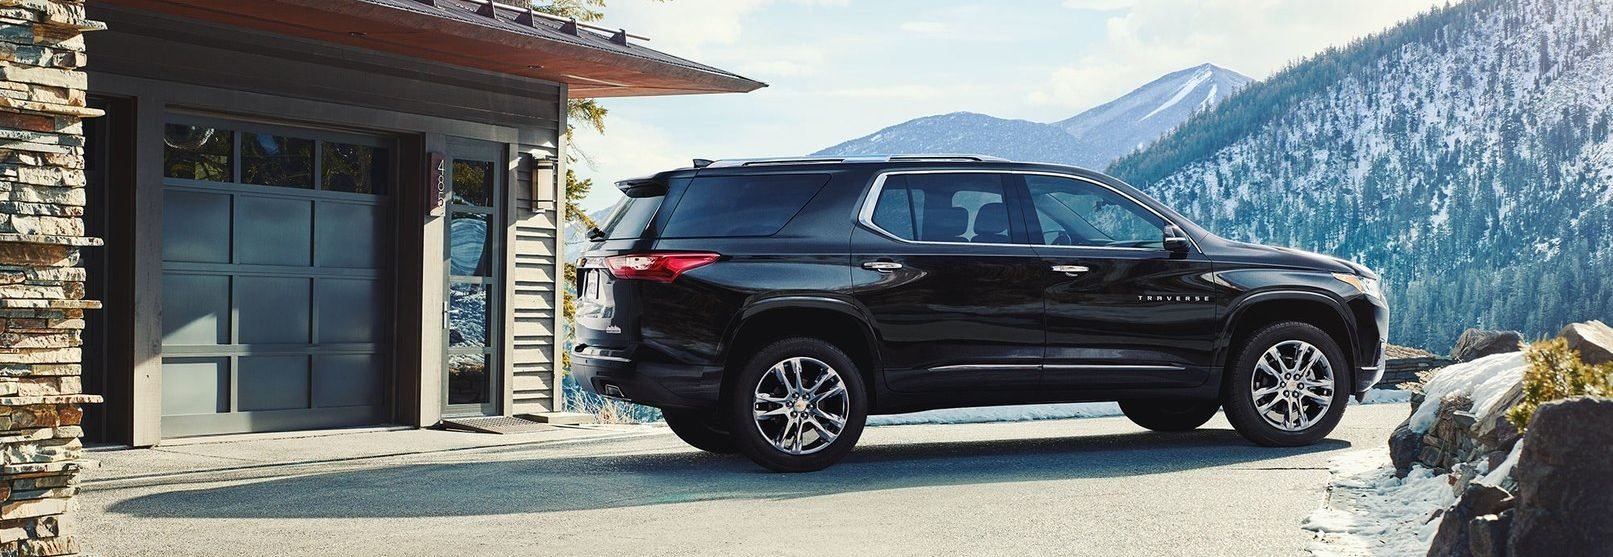 2019 Chevrolet Traverse Leasing near Worthington, MN